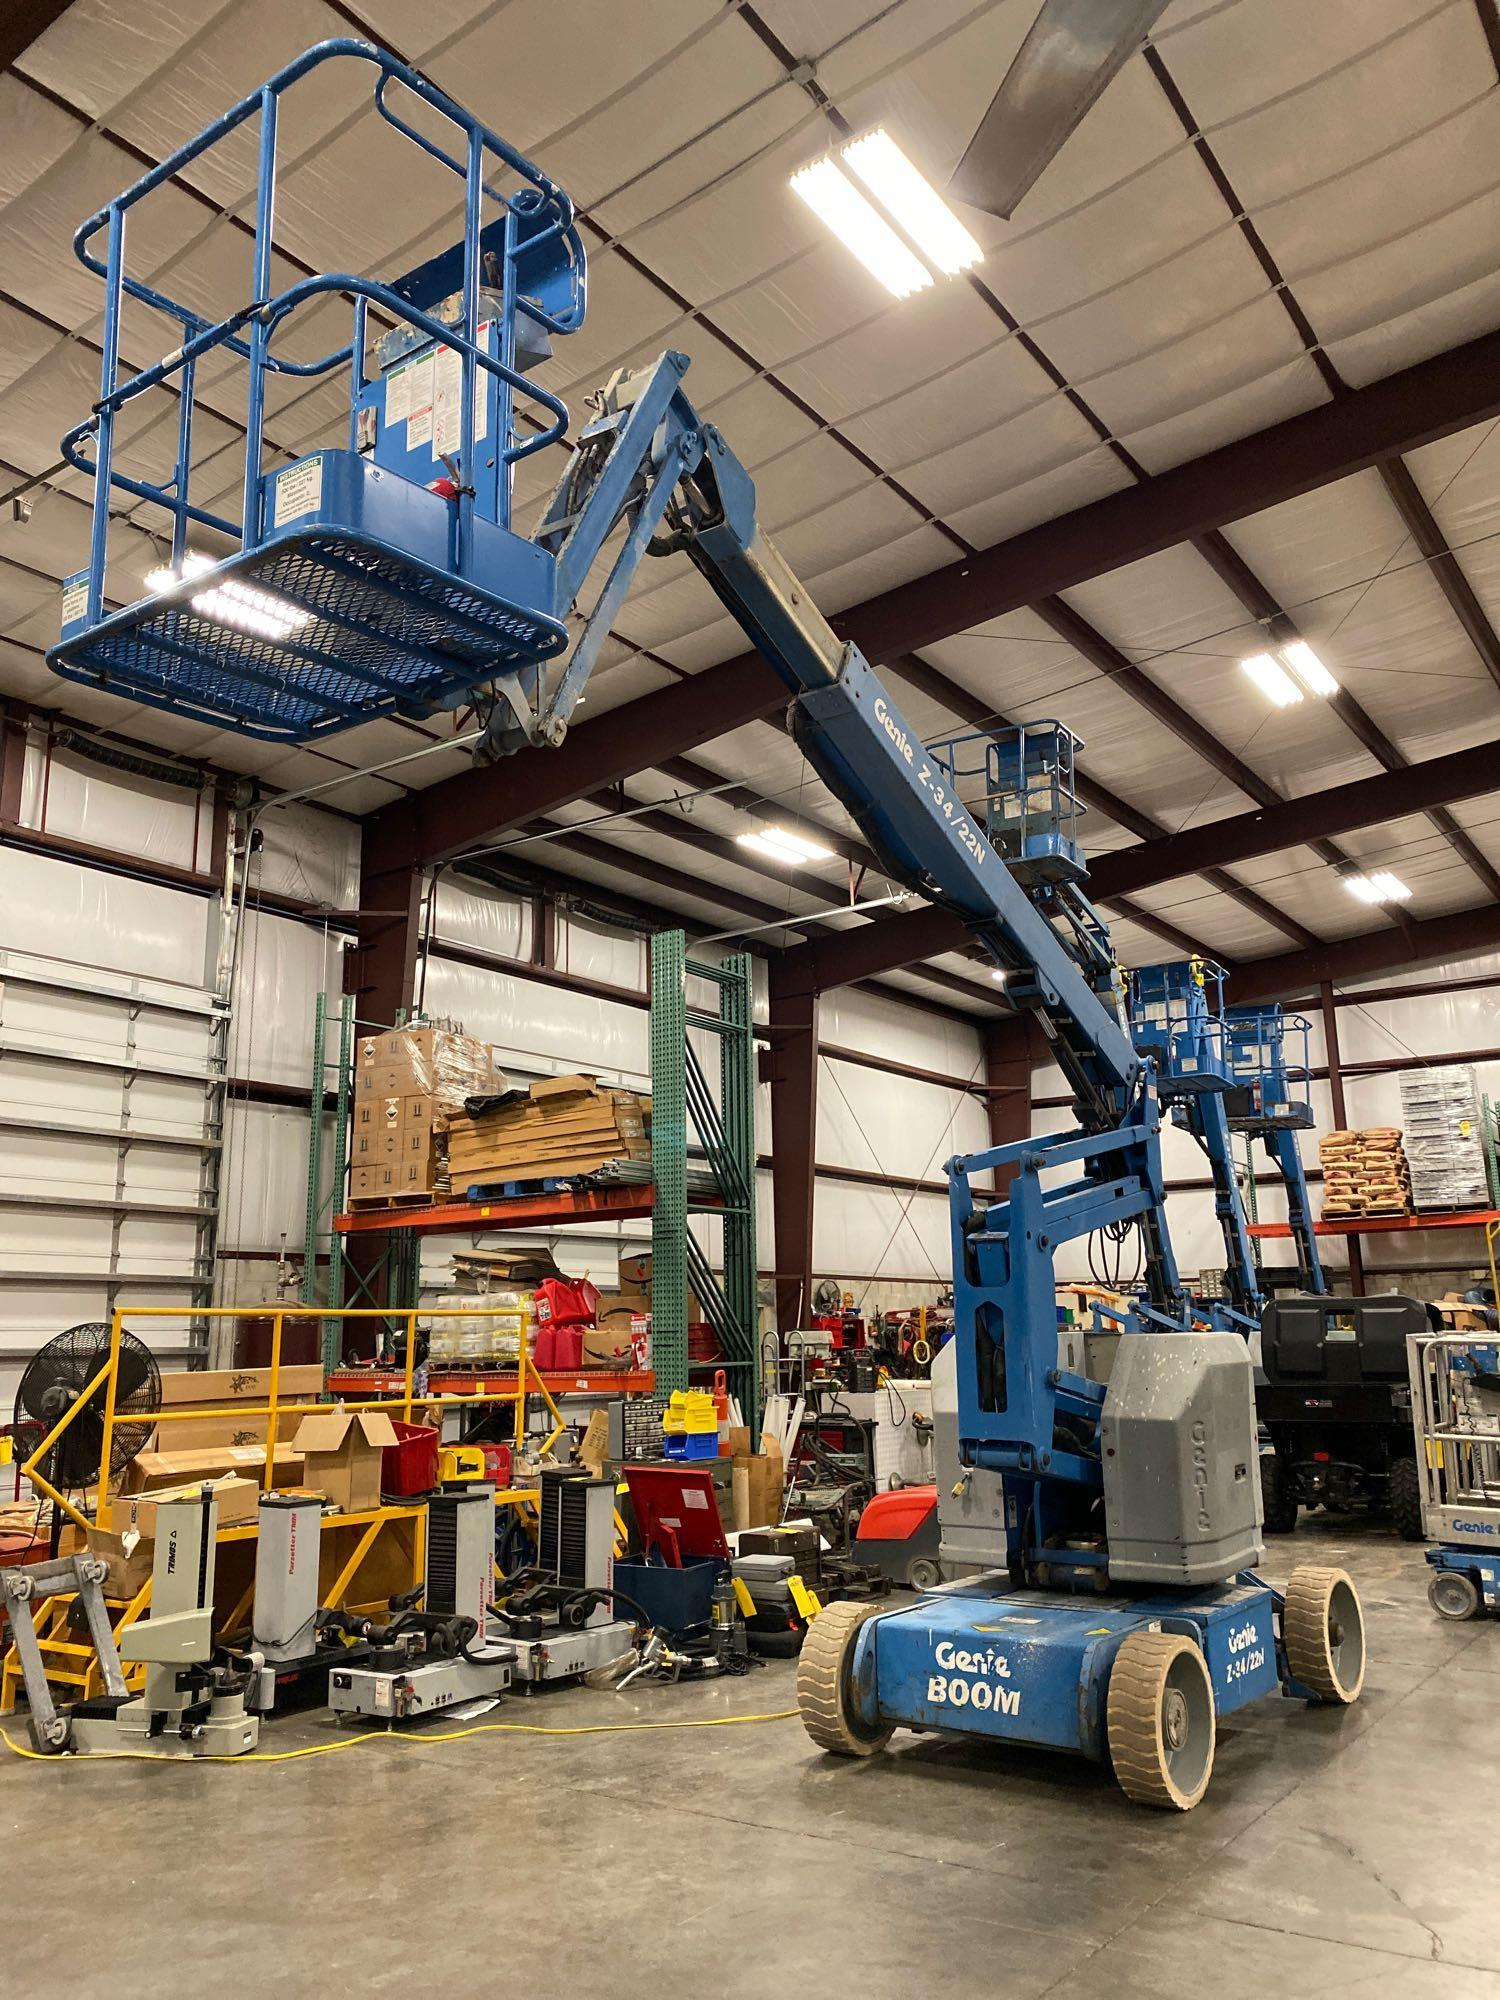 Lot 70 - GENIE Z-34/22N ARTICULATING ELECTRIC BOOM LIFT, NON MARKING TIRES, 34' PLATFORM HEIGHT